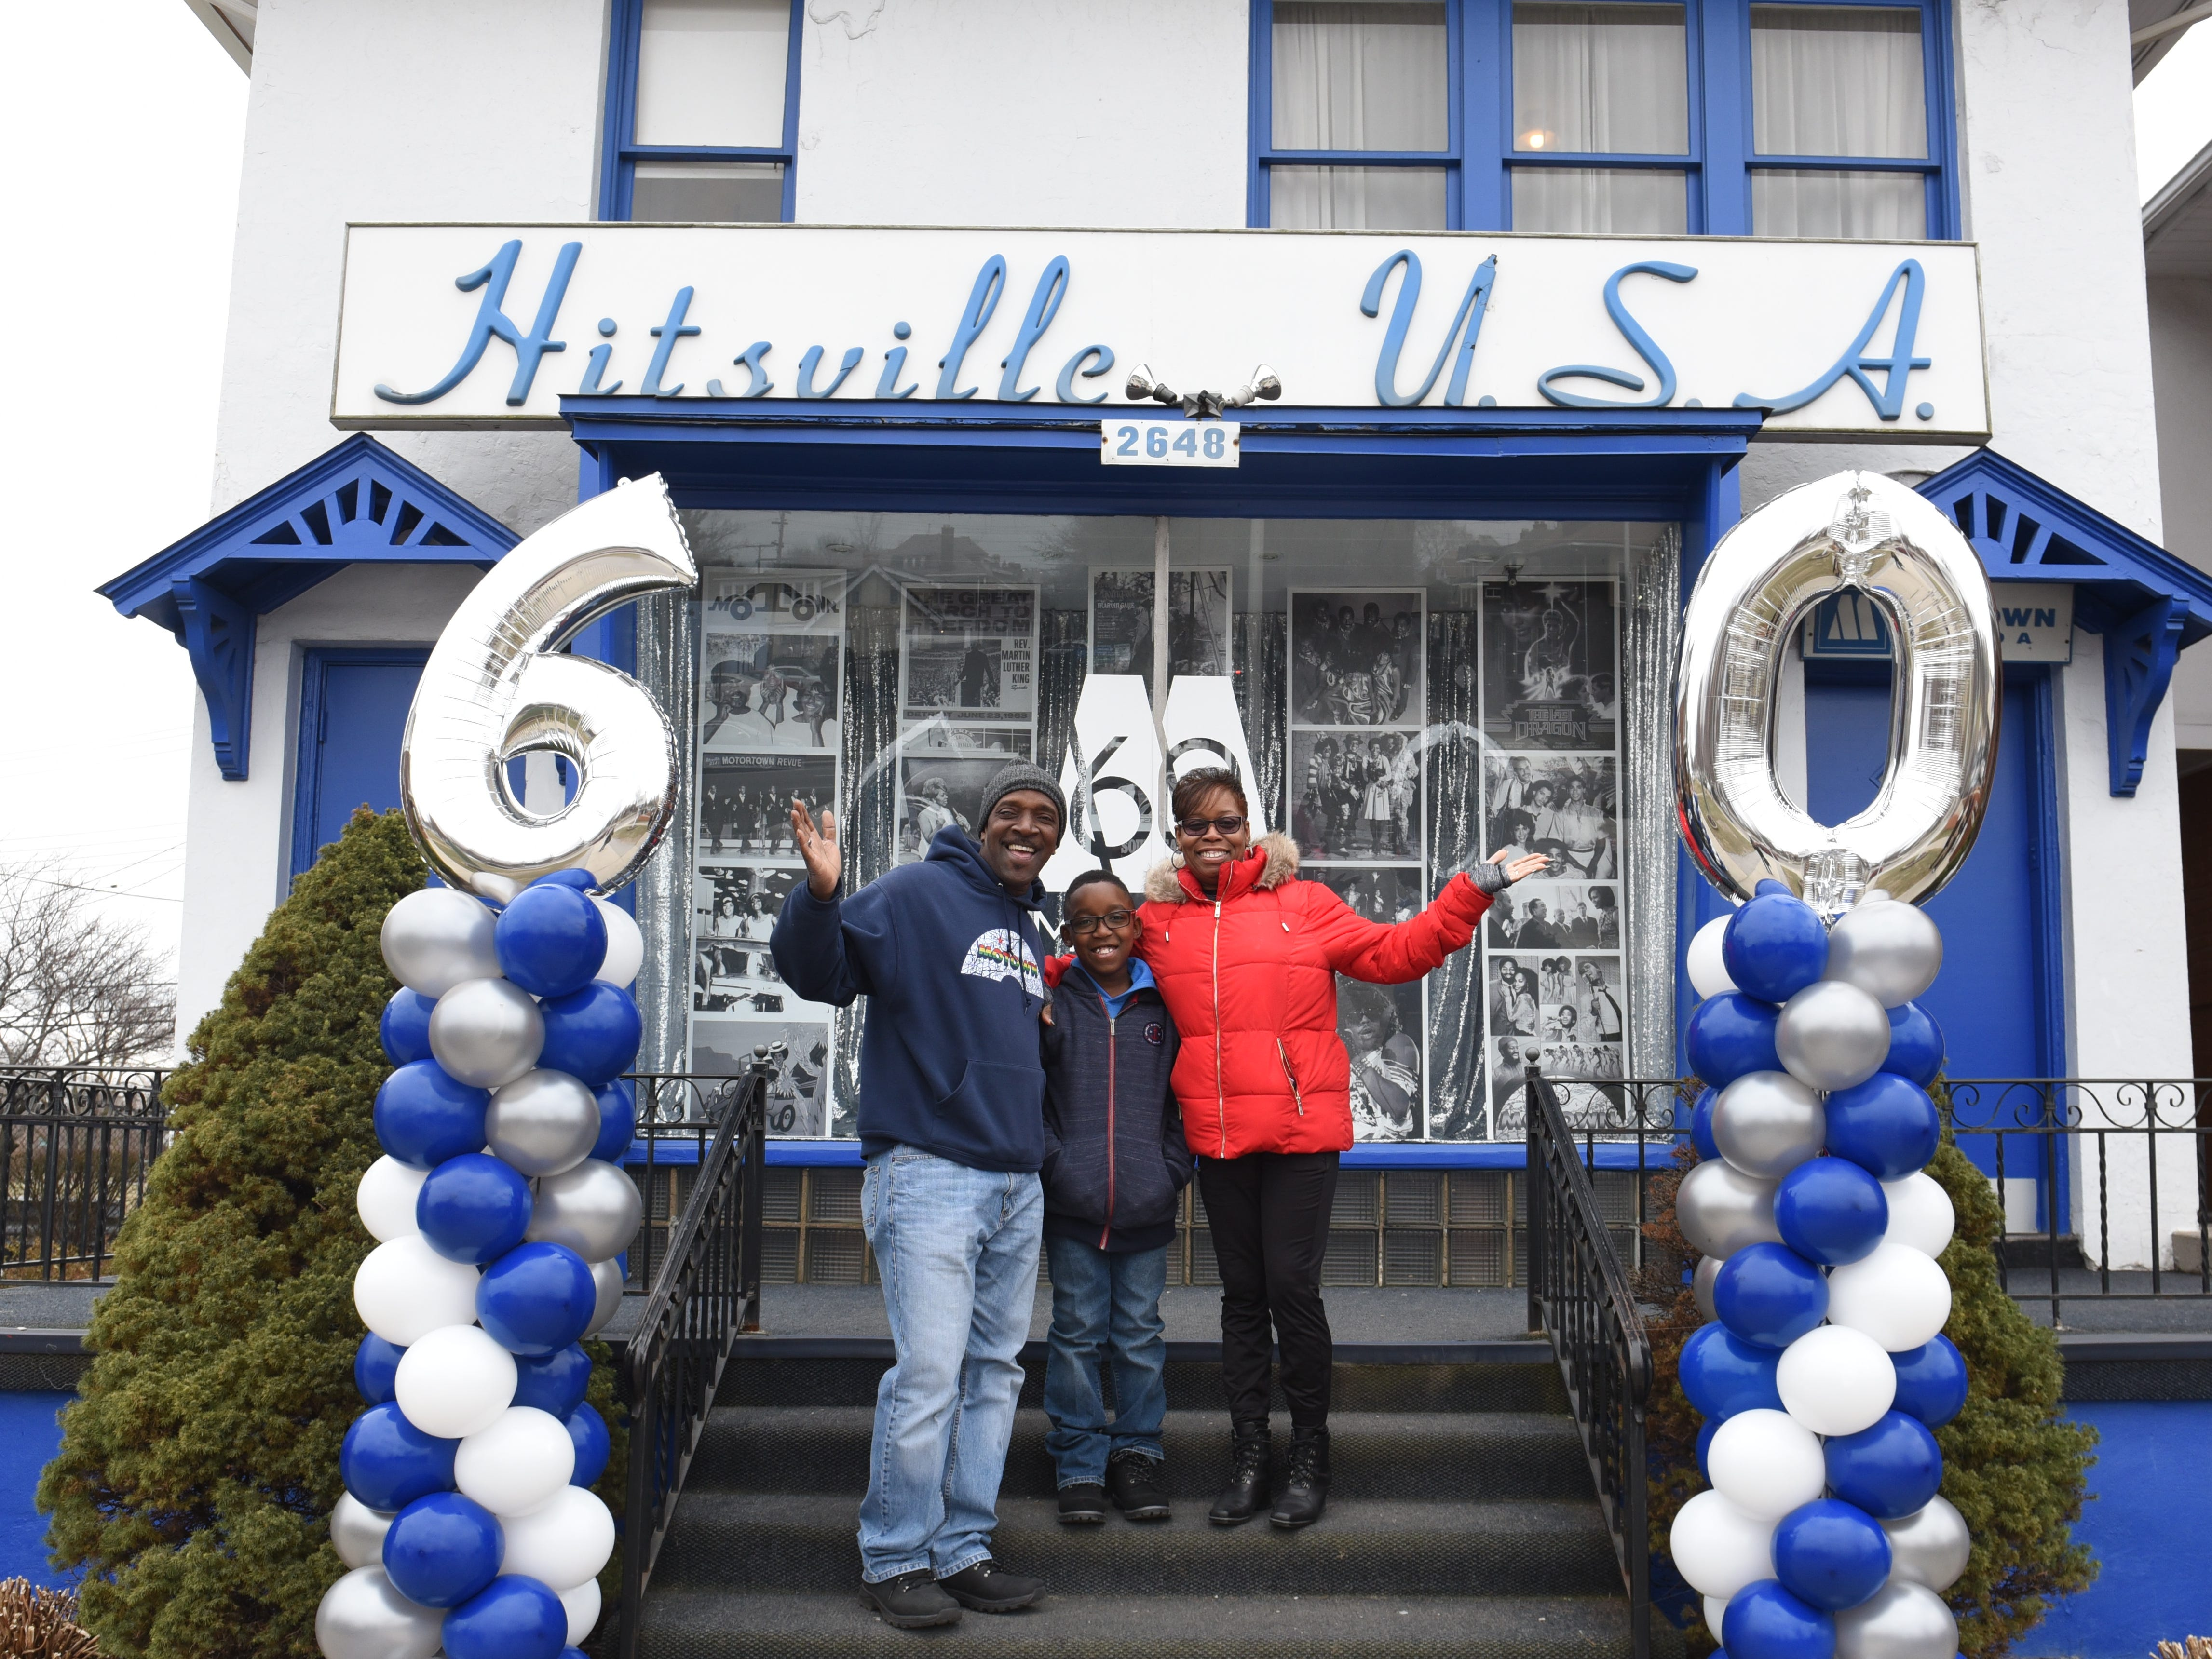 Steve Thomas of Oak Park, with his son DeMarco, 10, and wife Lisette, smile and wave outside the Motown Museum on Saturday, Jan. 12, 2019.